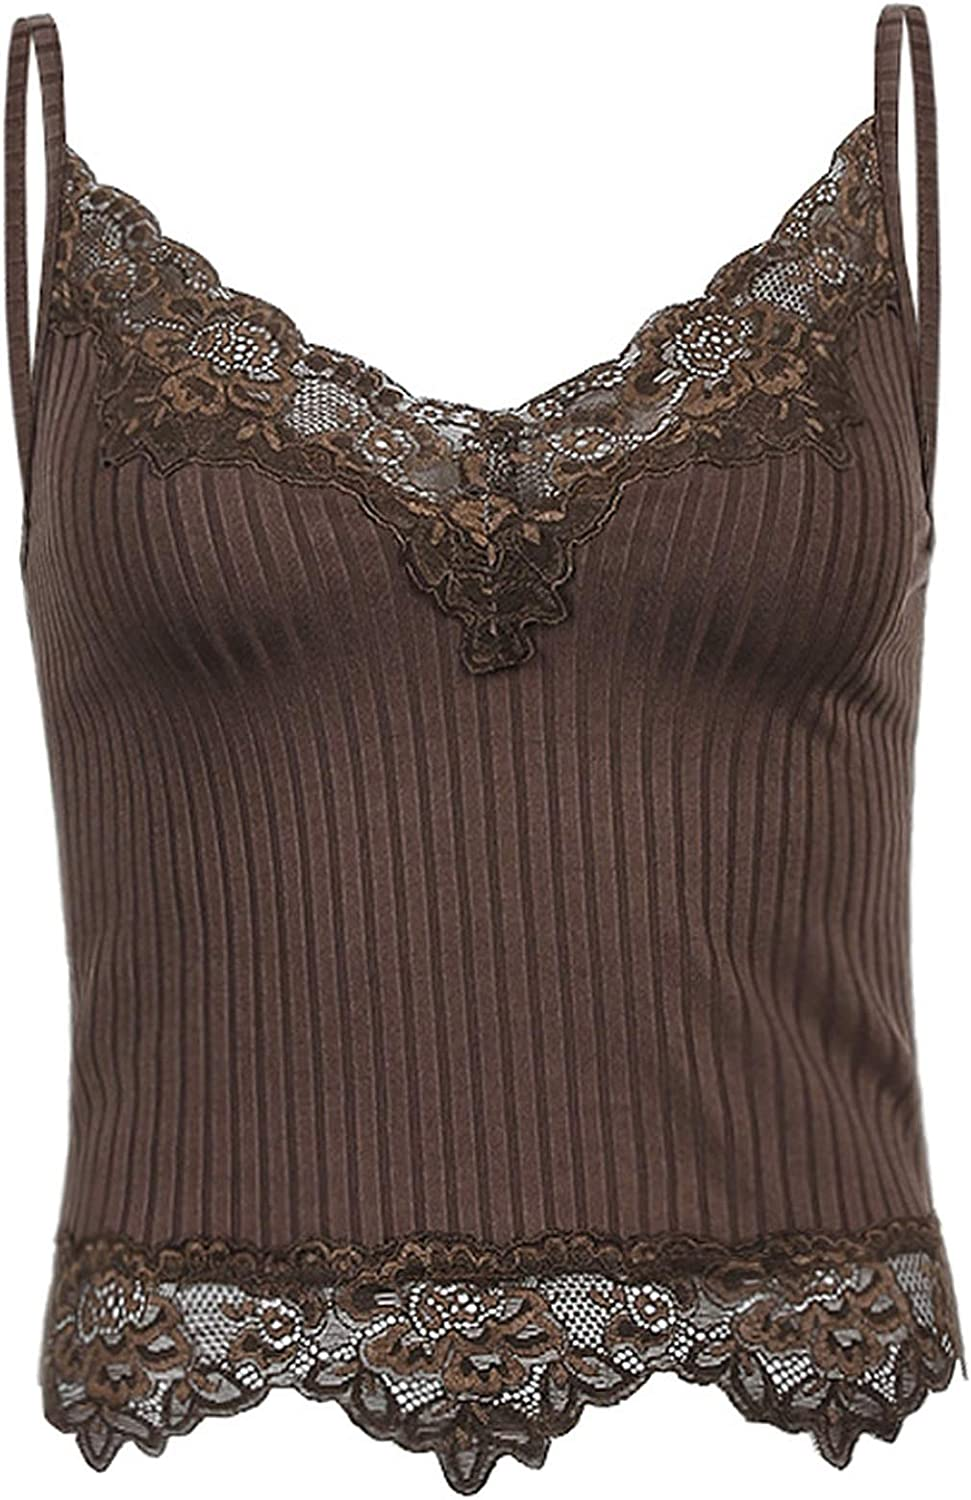 Lace Patchwork Brown Crop Top Y2k Clothes Fairy Grunge Style Cropped Tees Cami Ribbed Knitted Tank Tops